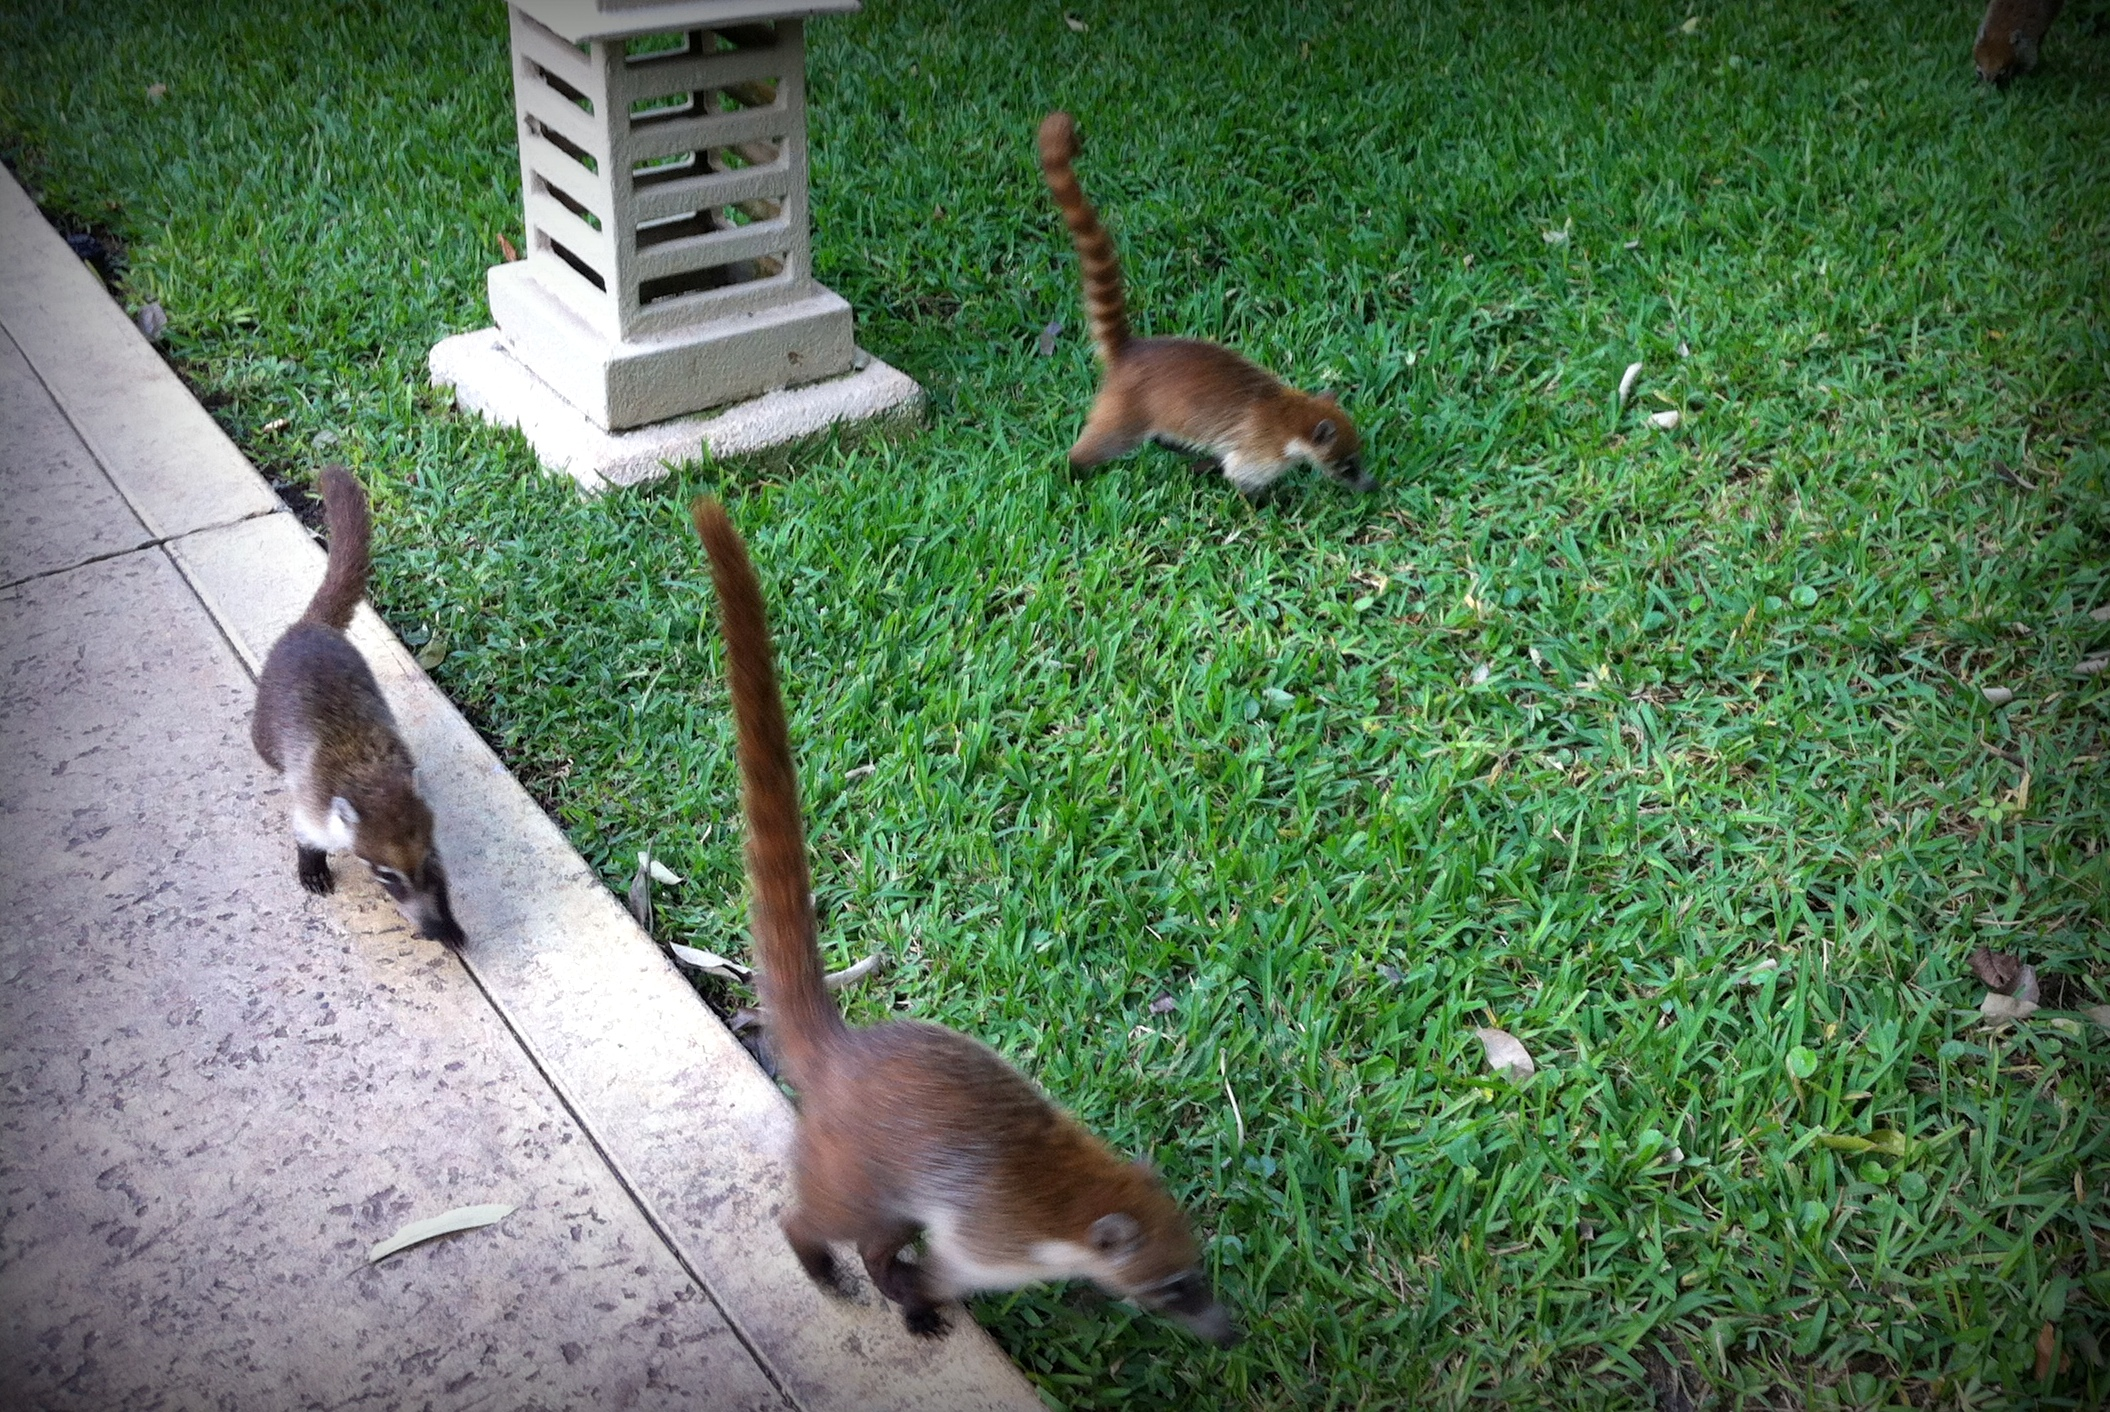 Coati Invasion in the Riviera Maya